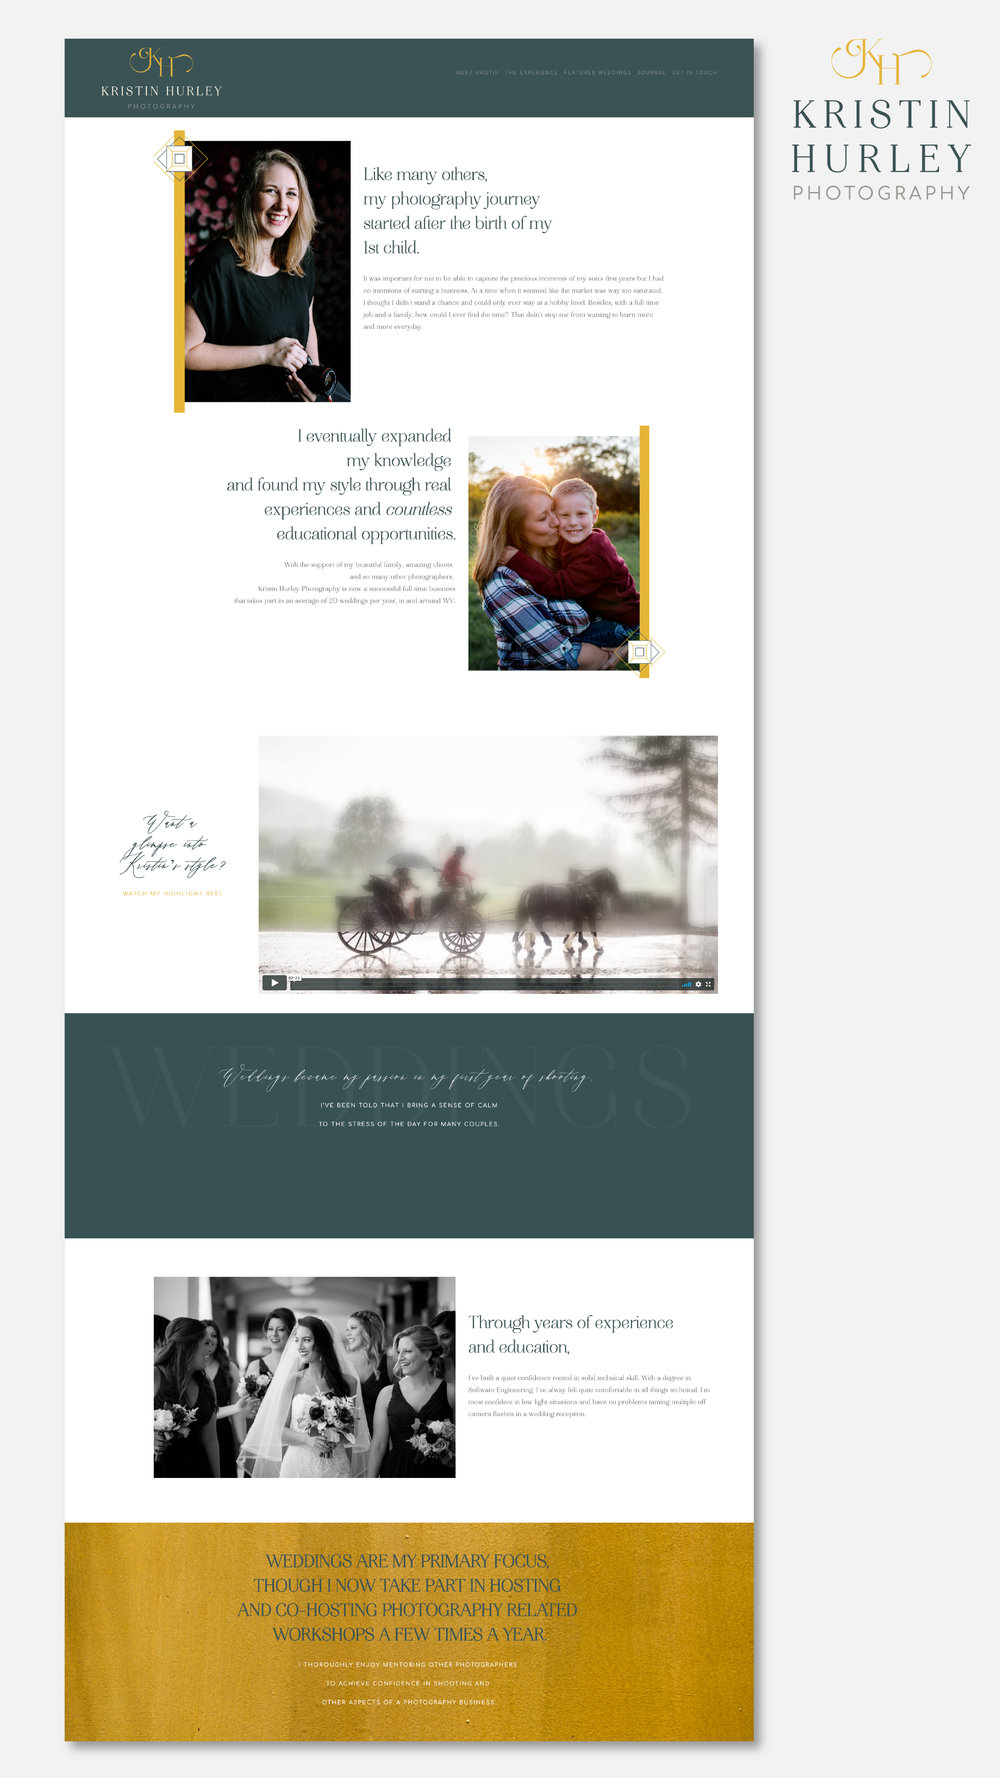 THREE HELLOS CREATIVE CO. KRISTIN HURLEY PHOTOGRAPHY BRANDING AND WEBSITE DESIGN